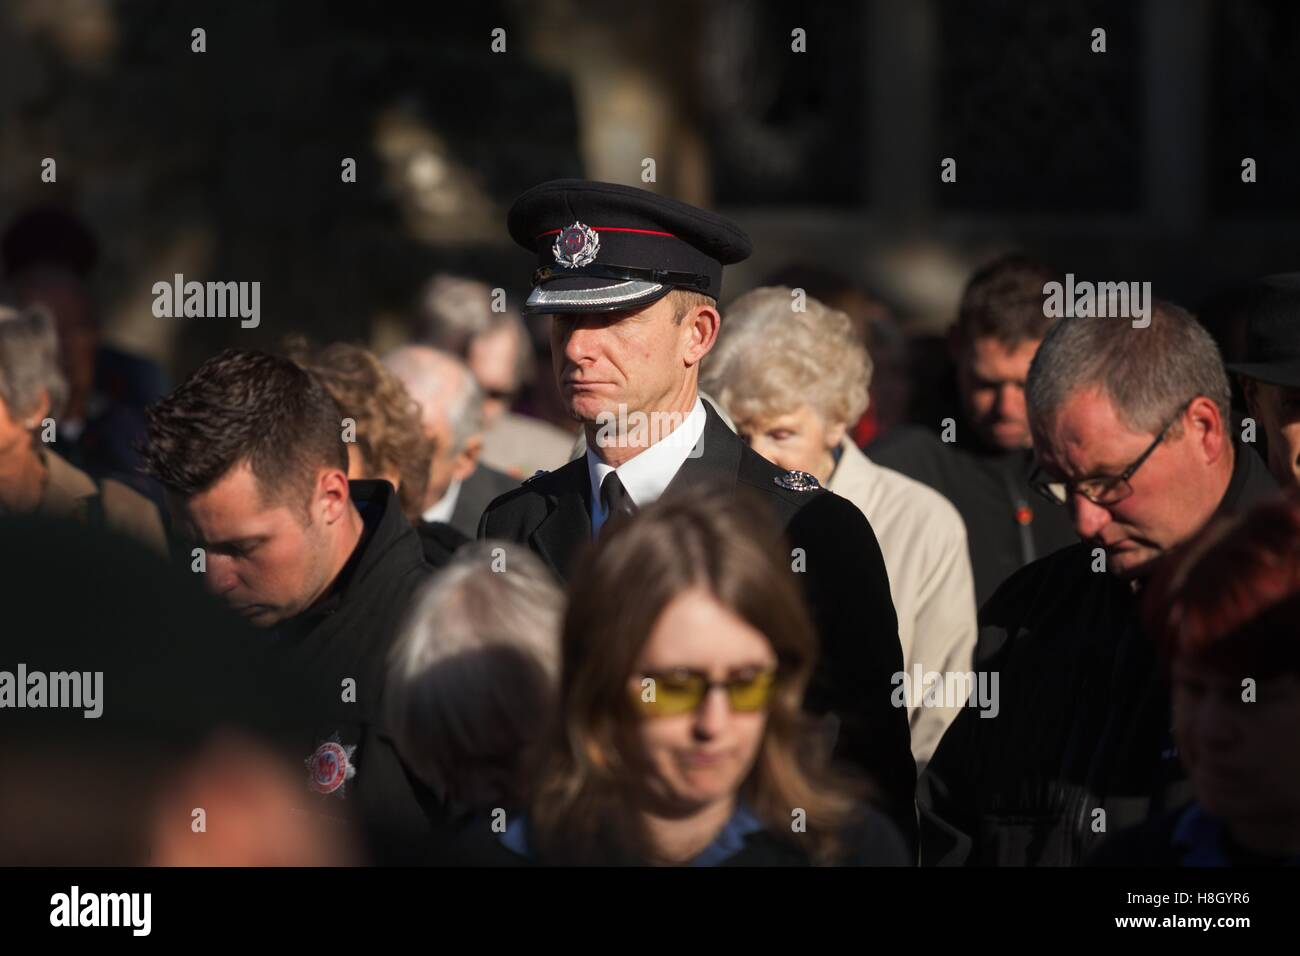 Sidmouth, Devon, UK. 13th November, 2016. Remembrance Sunday, Sidmouth, Devon, 13th Nov 16 South West Photos / Alamy Stock Photo